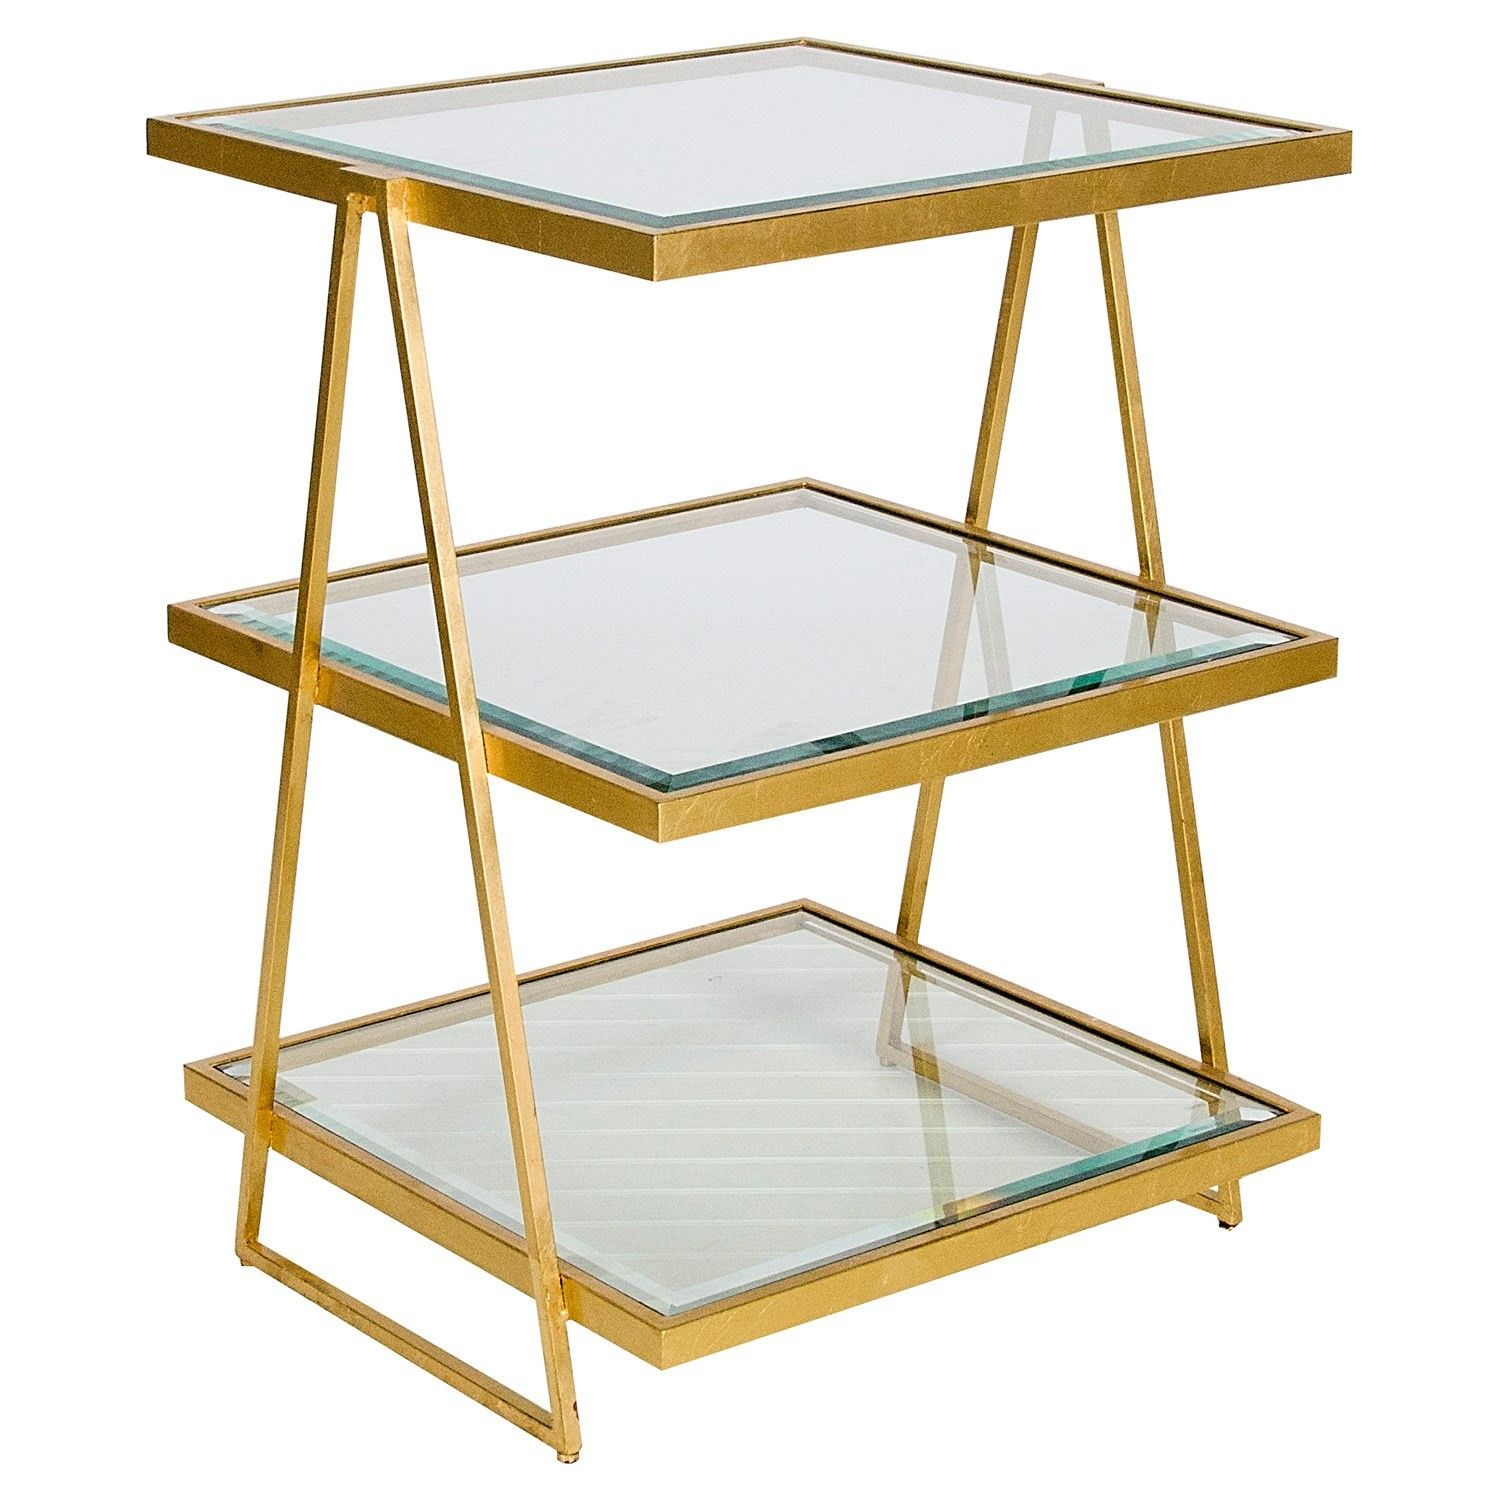 3 Tier With Beveled Glass Shelves Choice Of Gold Leaf Or Nickel Plated Square Side Table Gold Side Table Floating Glass Shelves